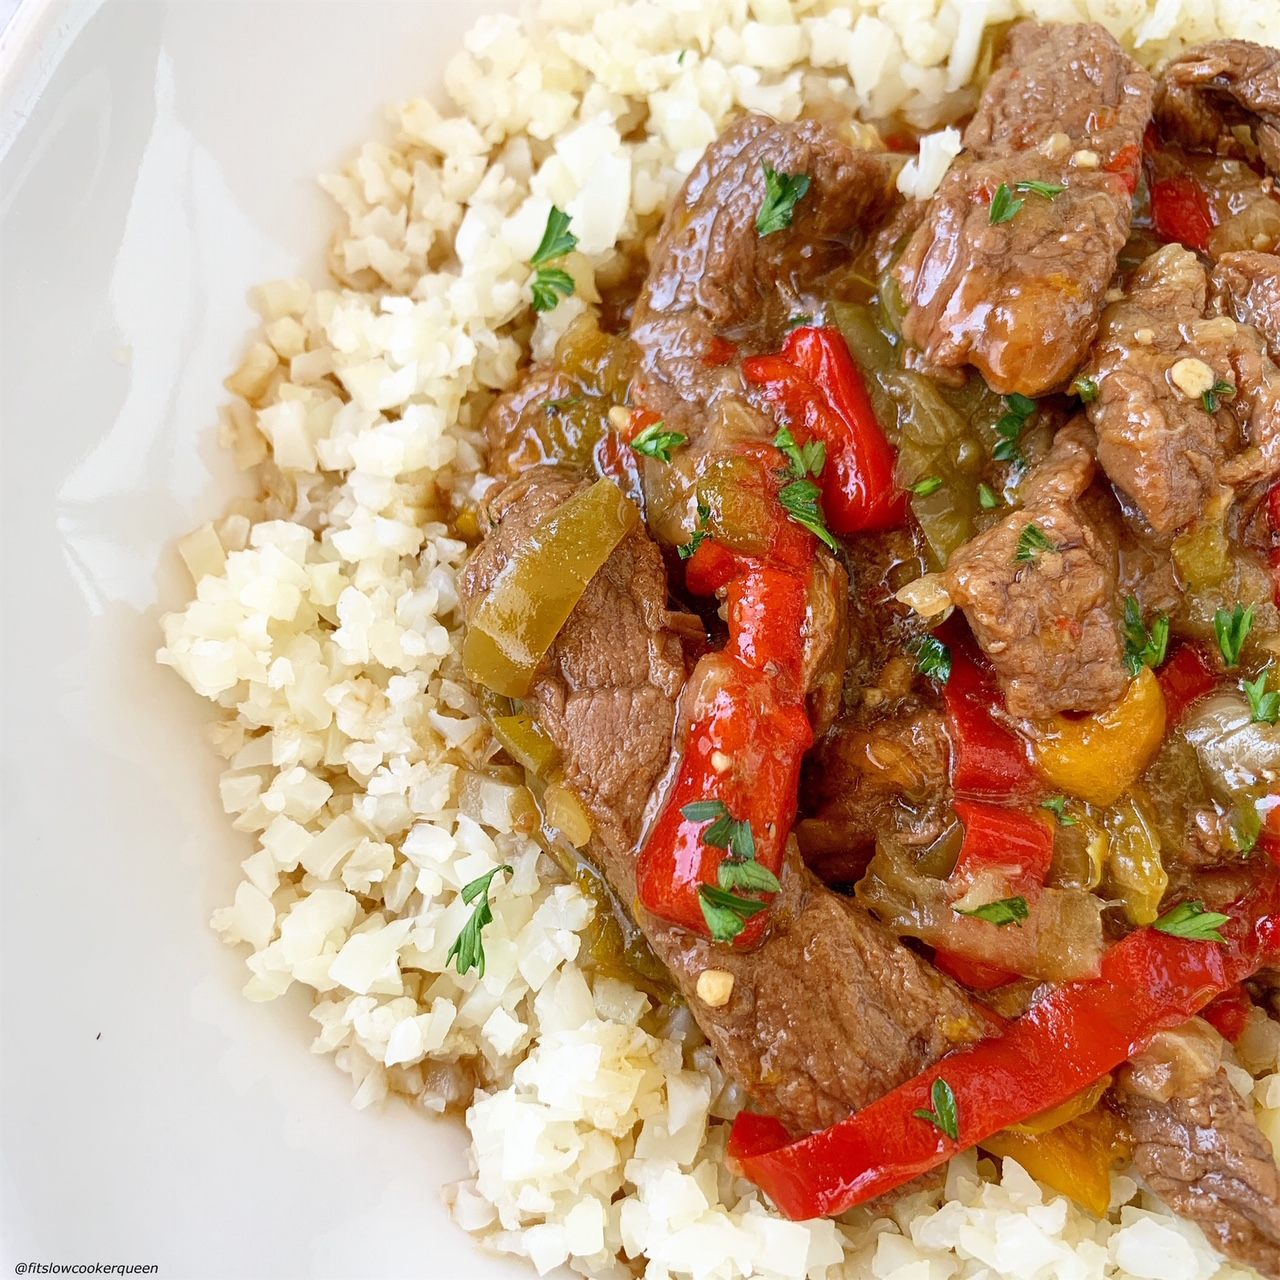 another pic cooked pepper steak placed with cauliflower rice